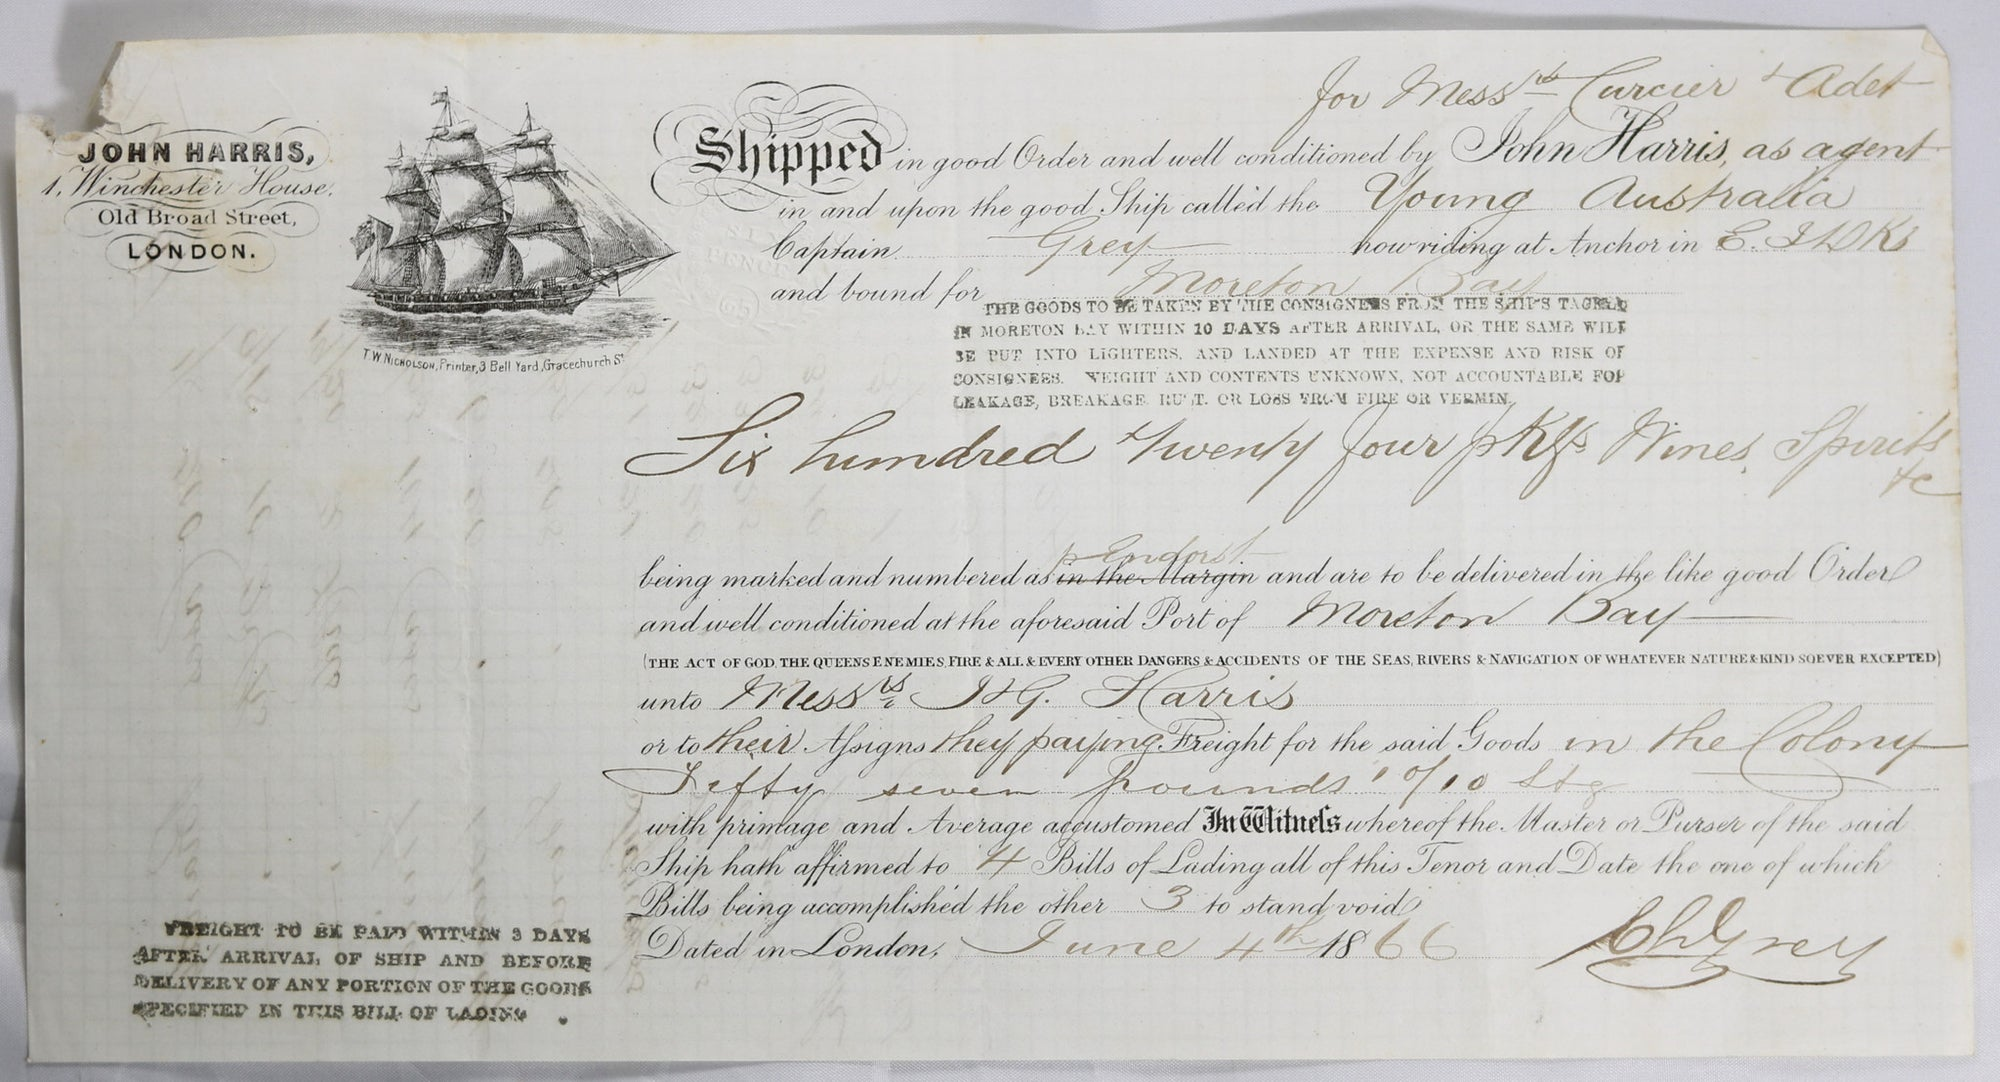 1866 maritime bill of lading, shipping wine & spirits London to Moreton Bay